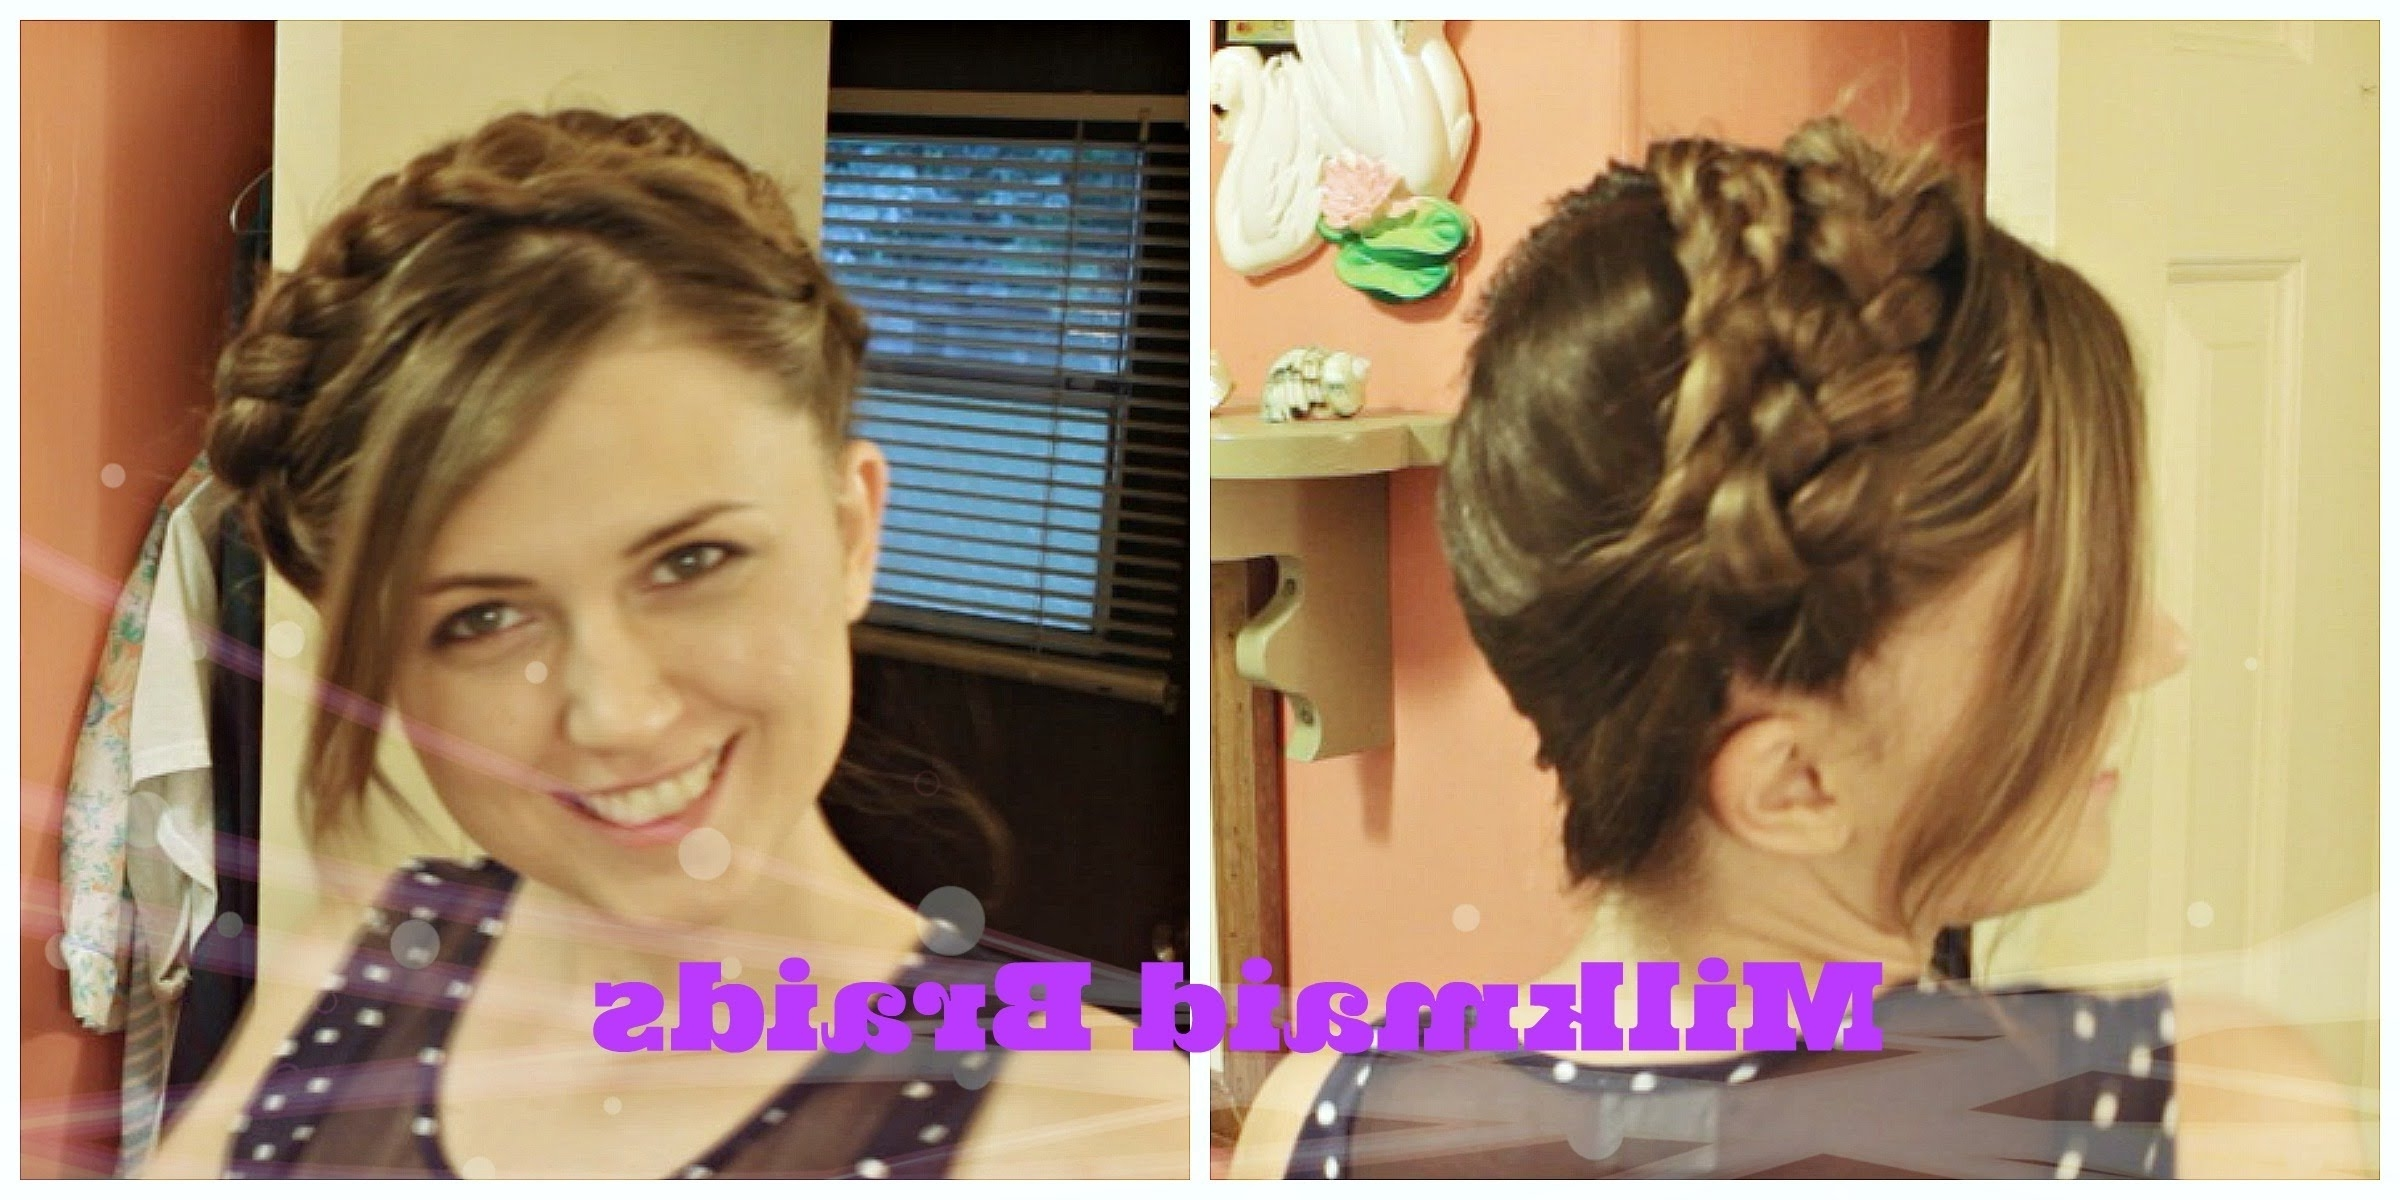 [%well Known Milkmaid Braids Hairstyles Throughout Easy Boho Braided Headband [no Heat], Milkmaid Braids Hair Tutorial|easy Boho Braided Headband [no Heat], Milkmaid Braids Hair Tutorial In Most Recently Released Milkmaid Braids Hairstyles%] (View 4 of 15)